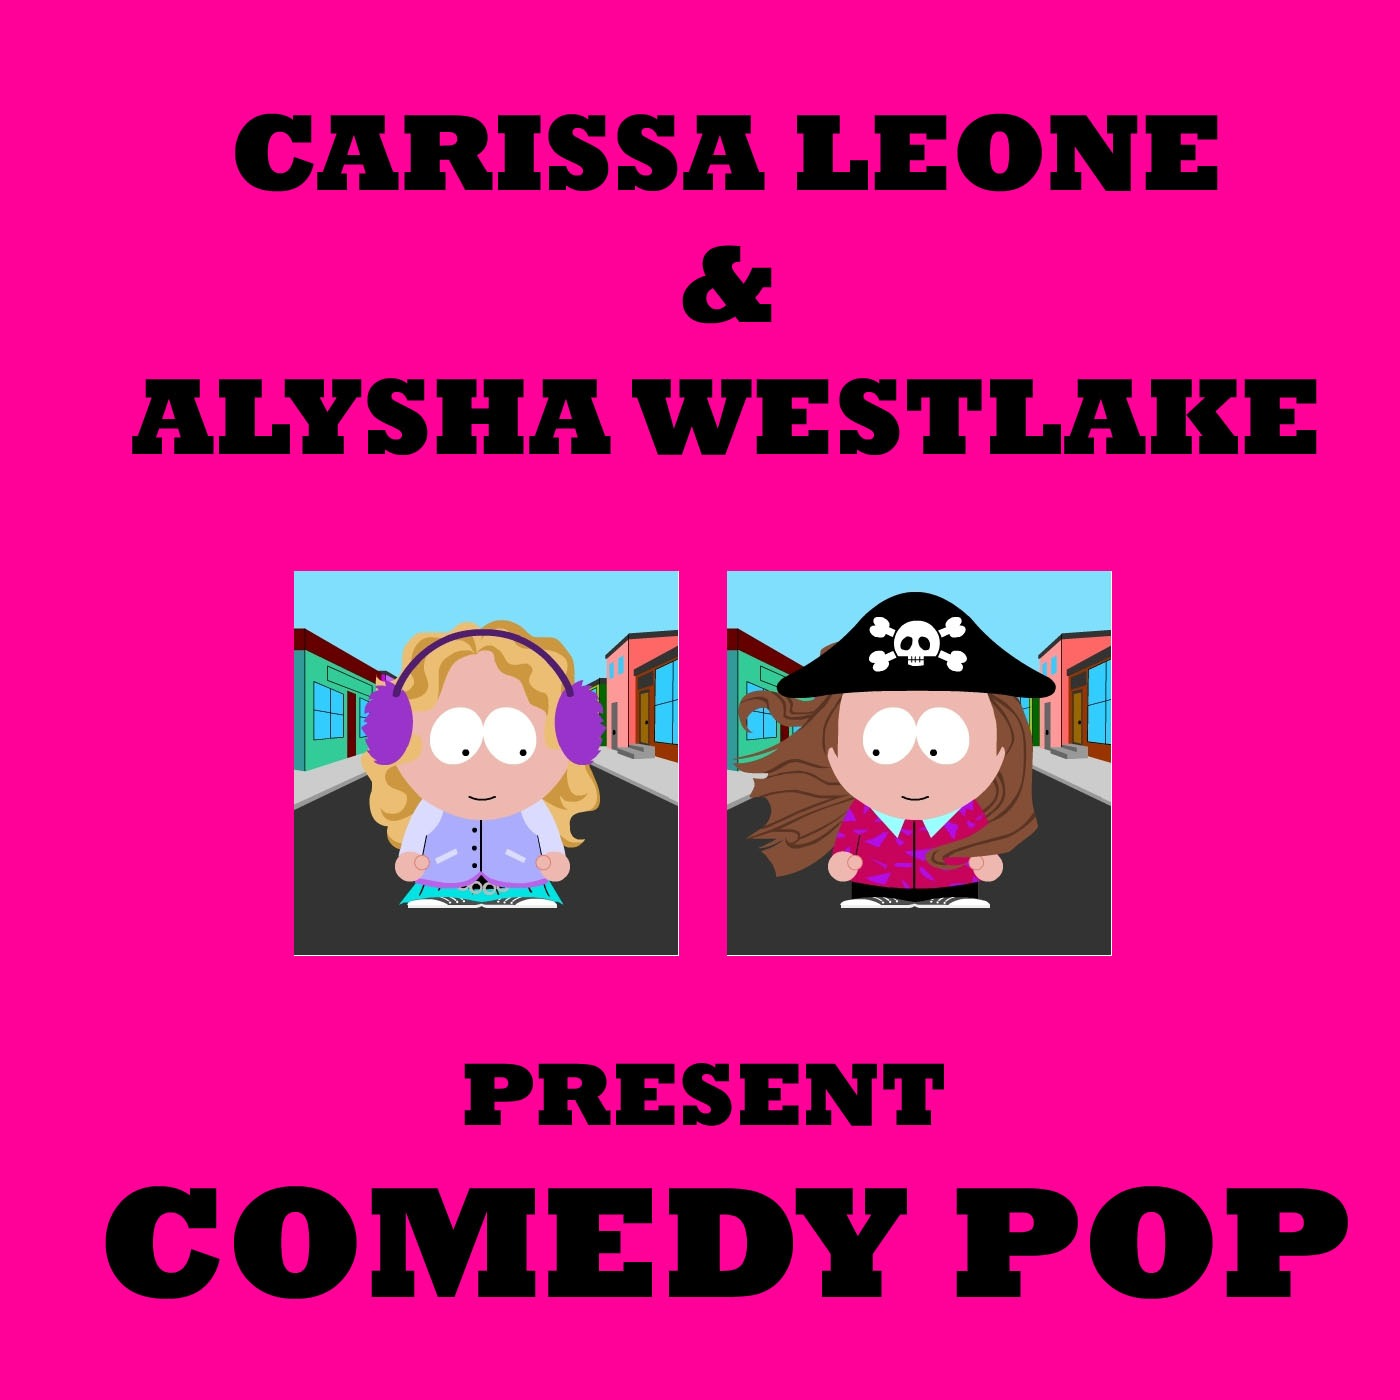 Leone & Westlake's Comedy Podcast